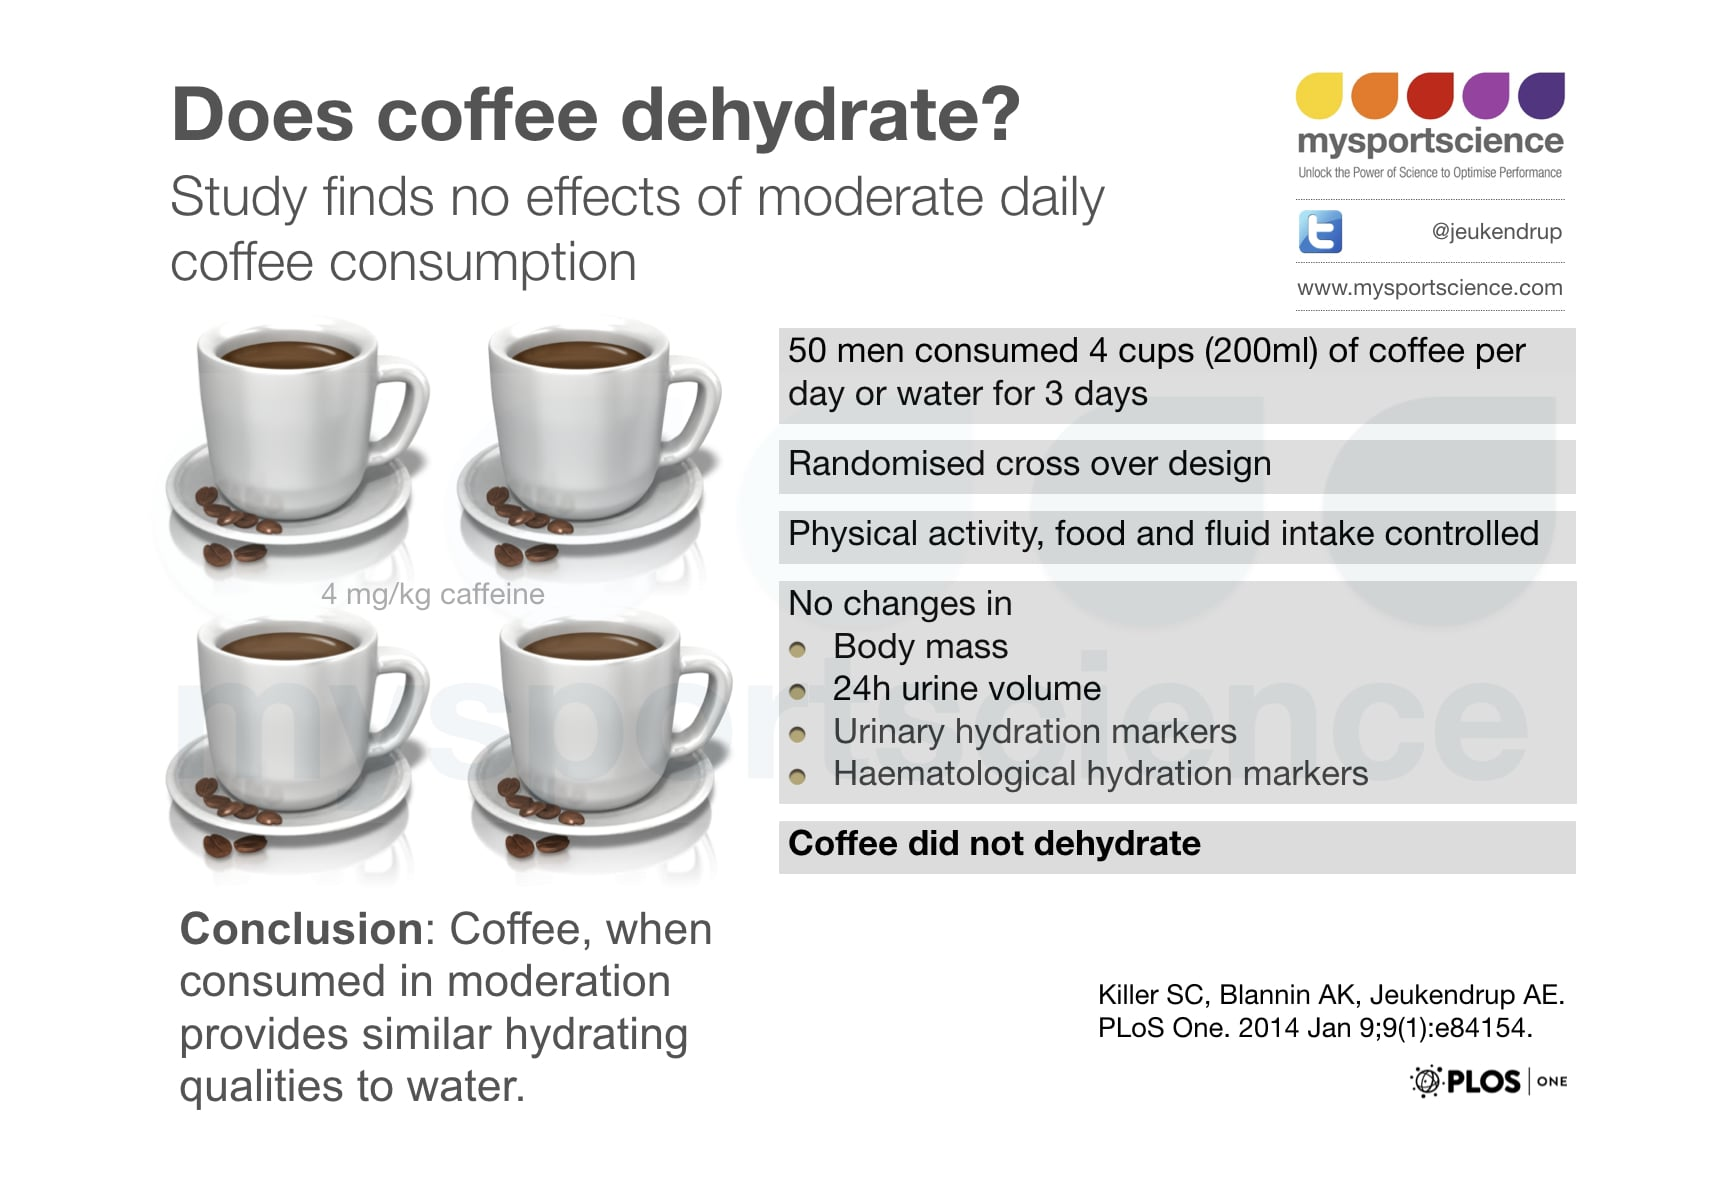 Does Coffee Dehydrate